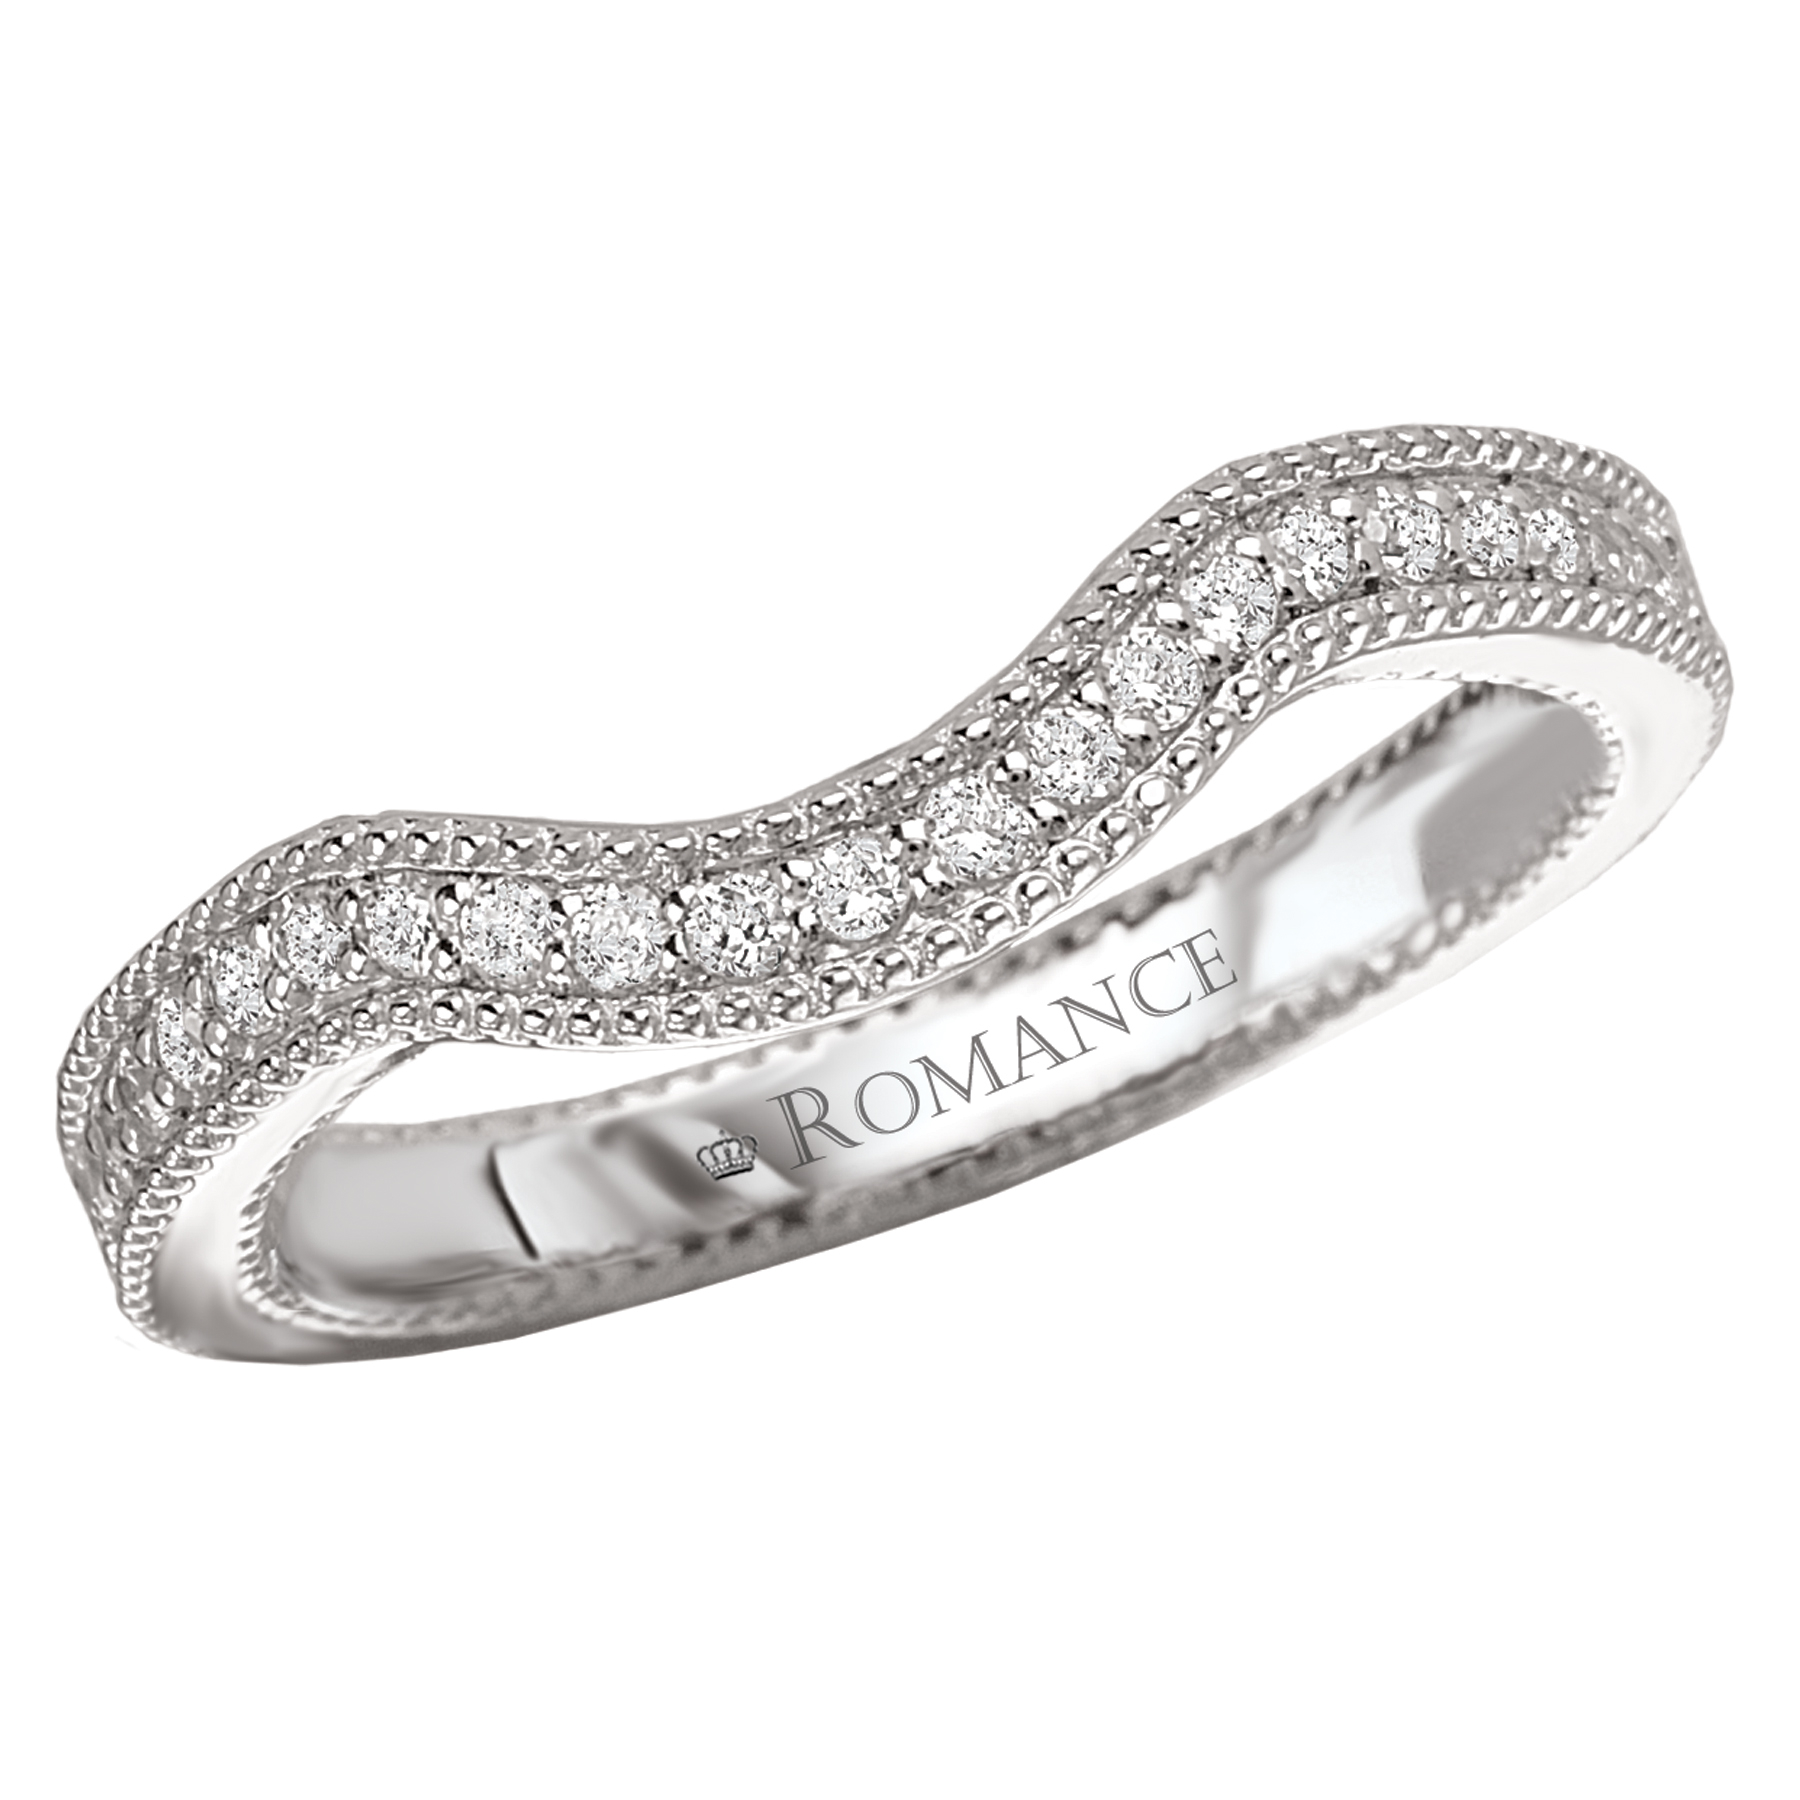 Romance Wedding Bands 117232-W product image